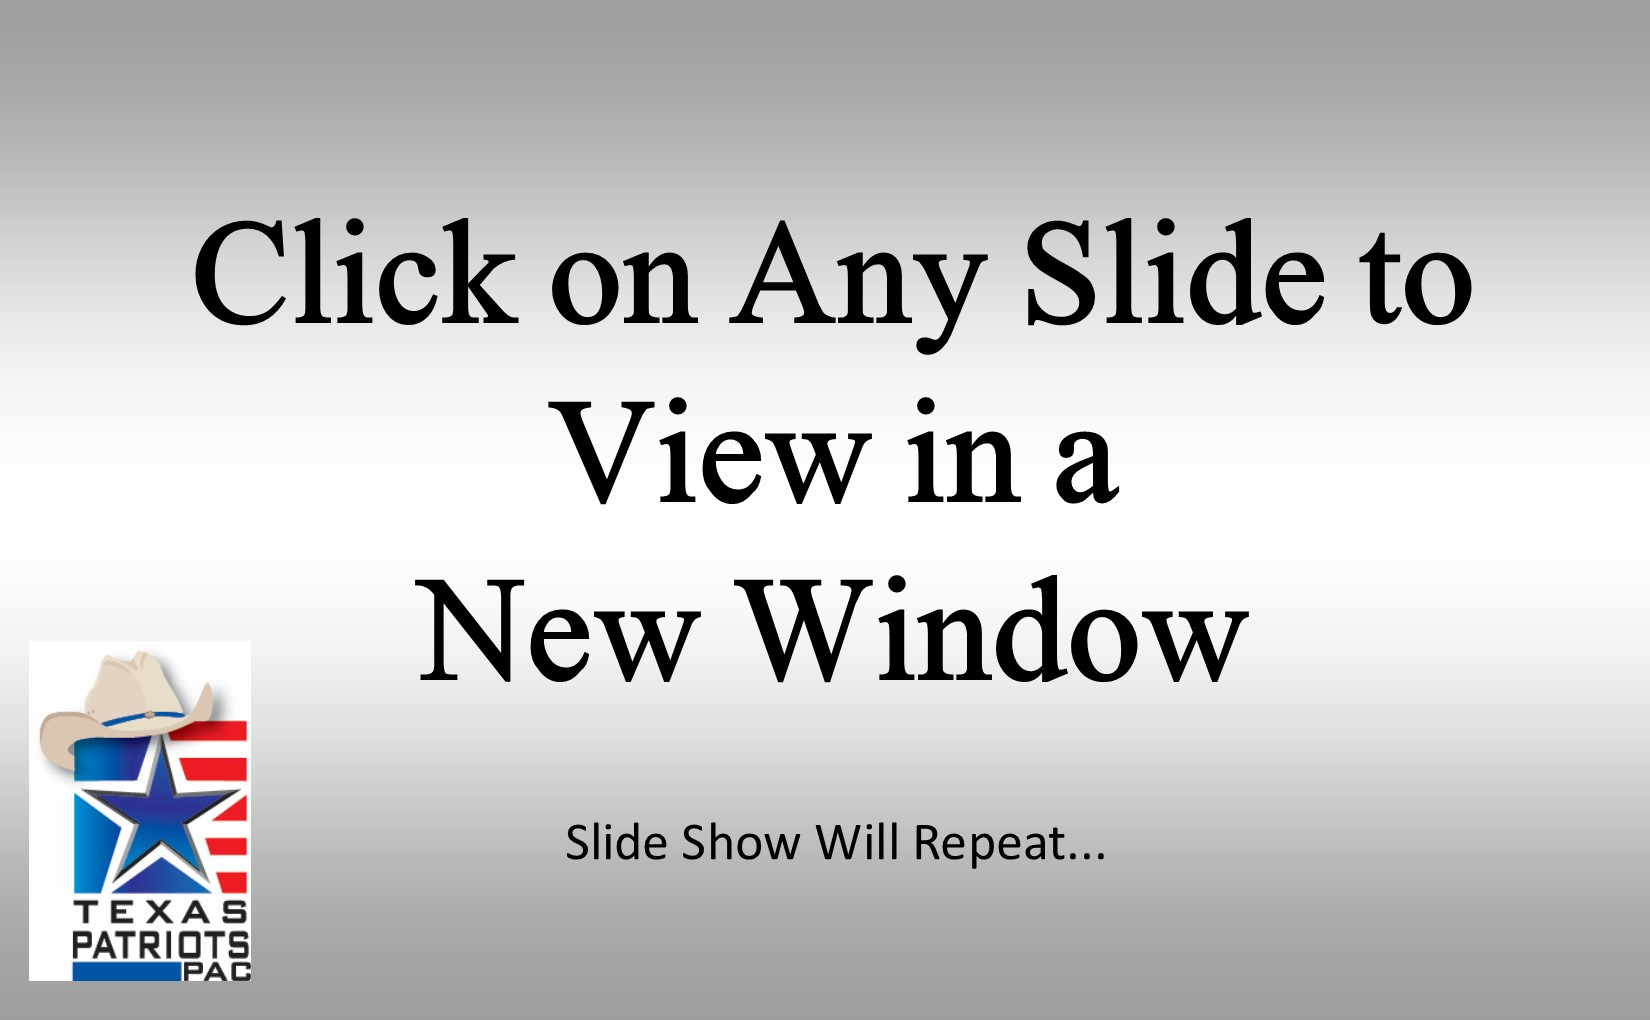 slide view new window.jpg